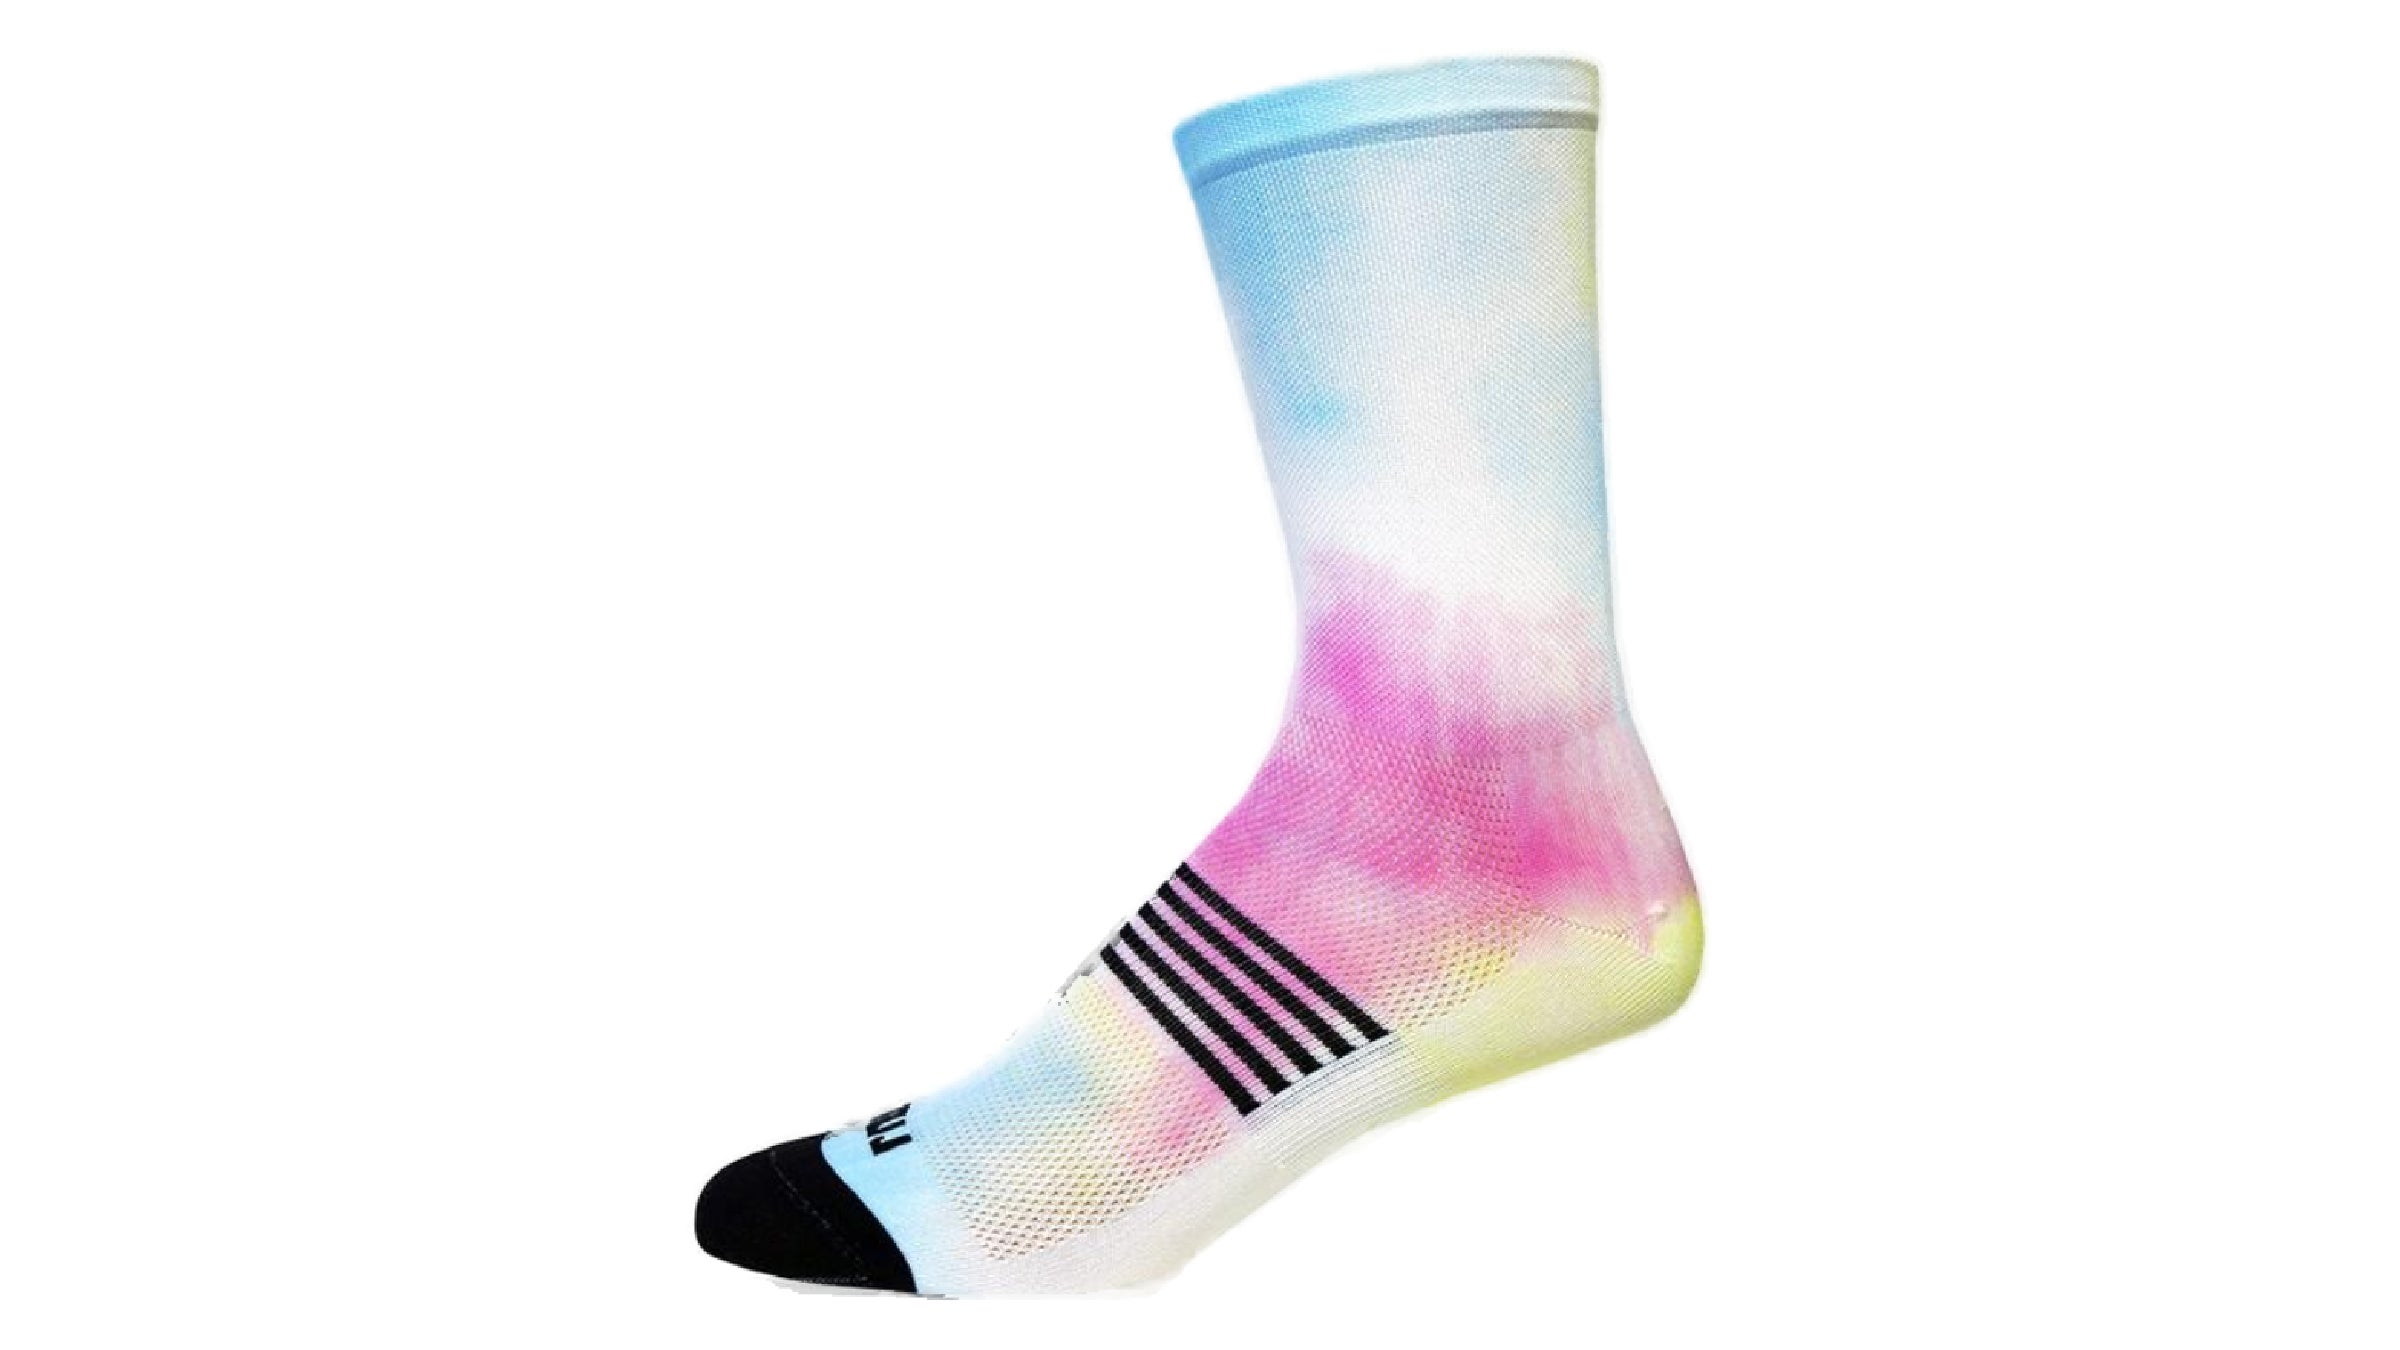 Rainbow-colored sock